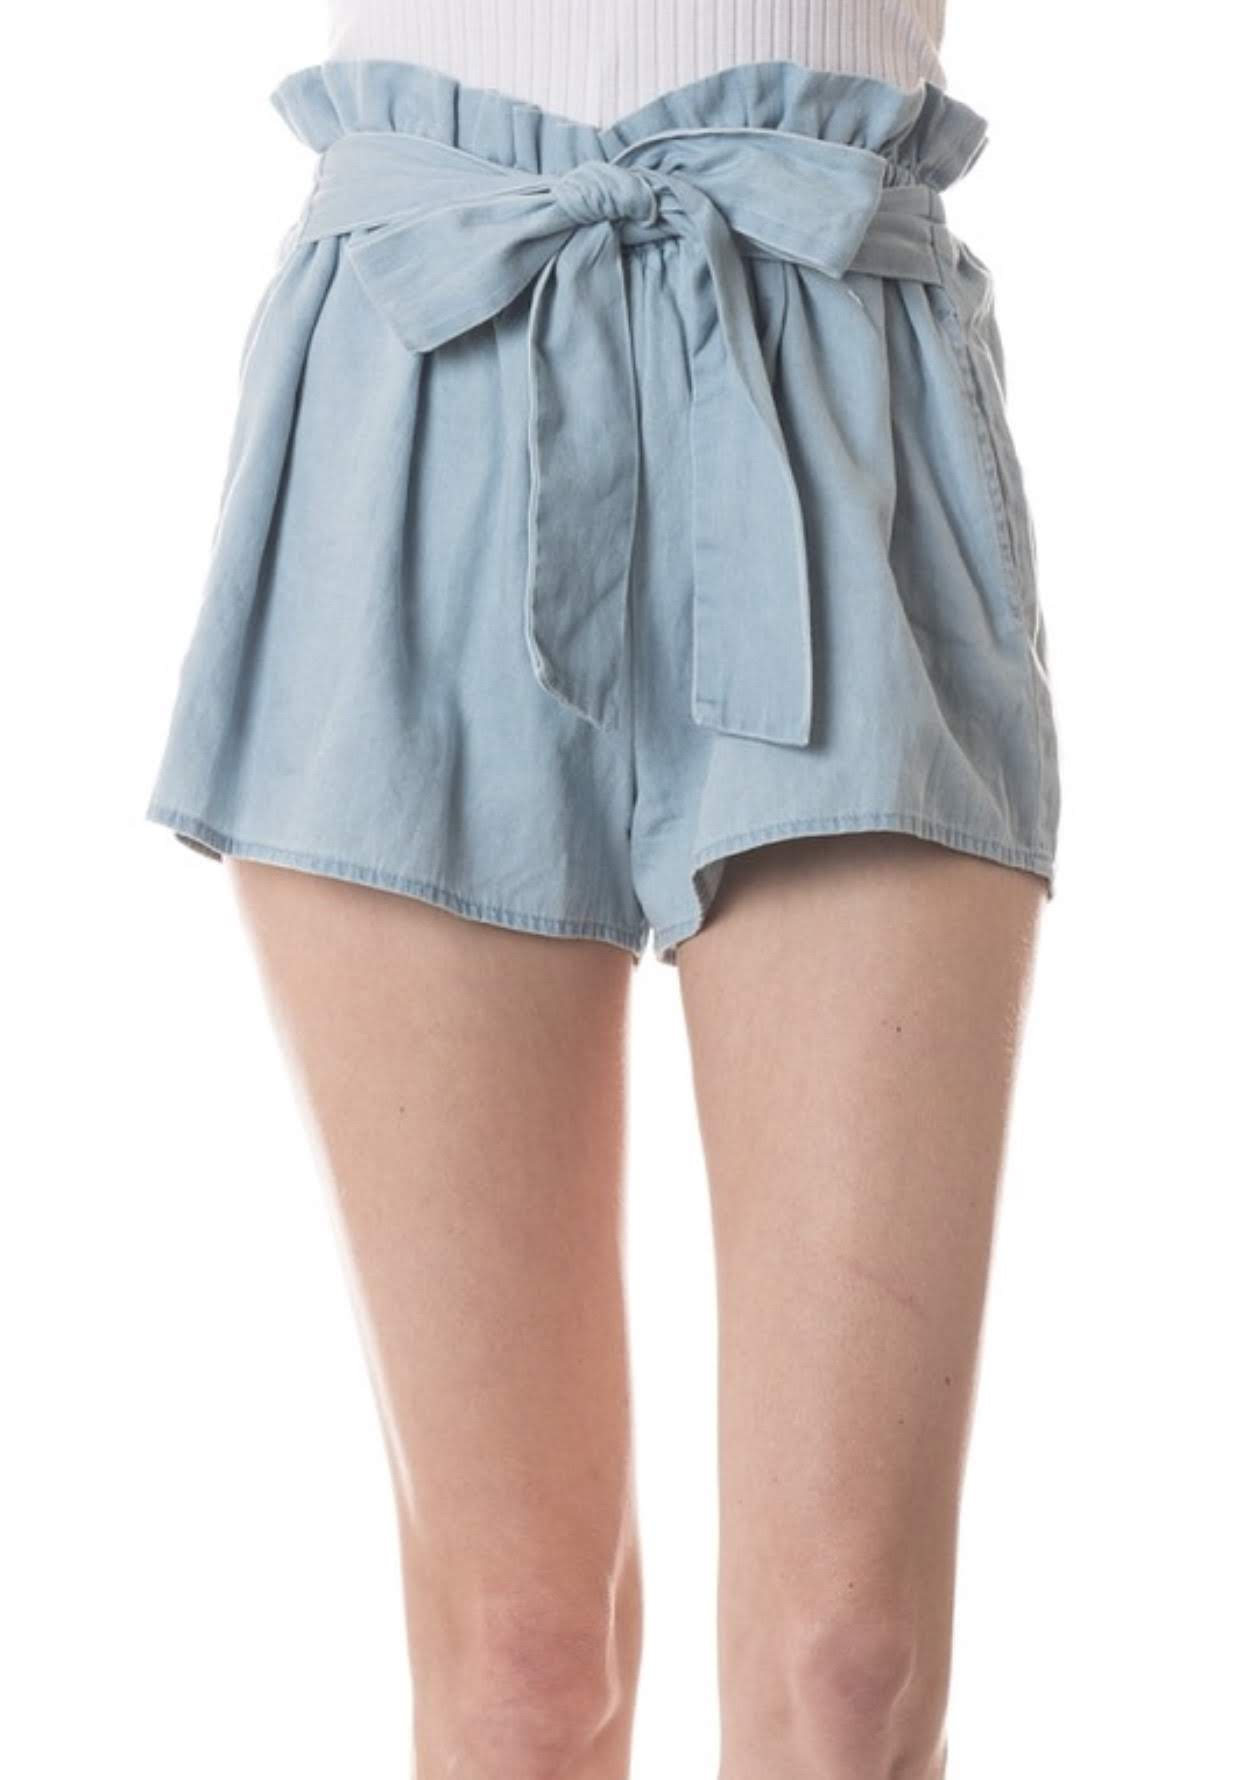 Light Blue Shorts with Waist Ruffle and Bow